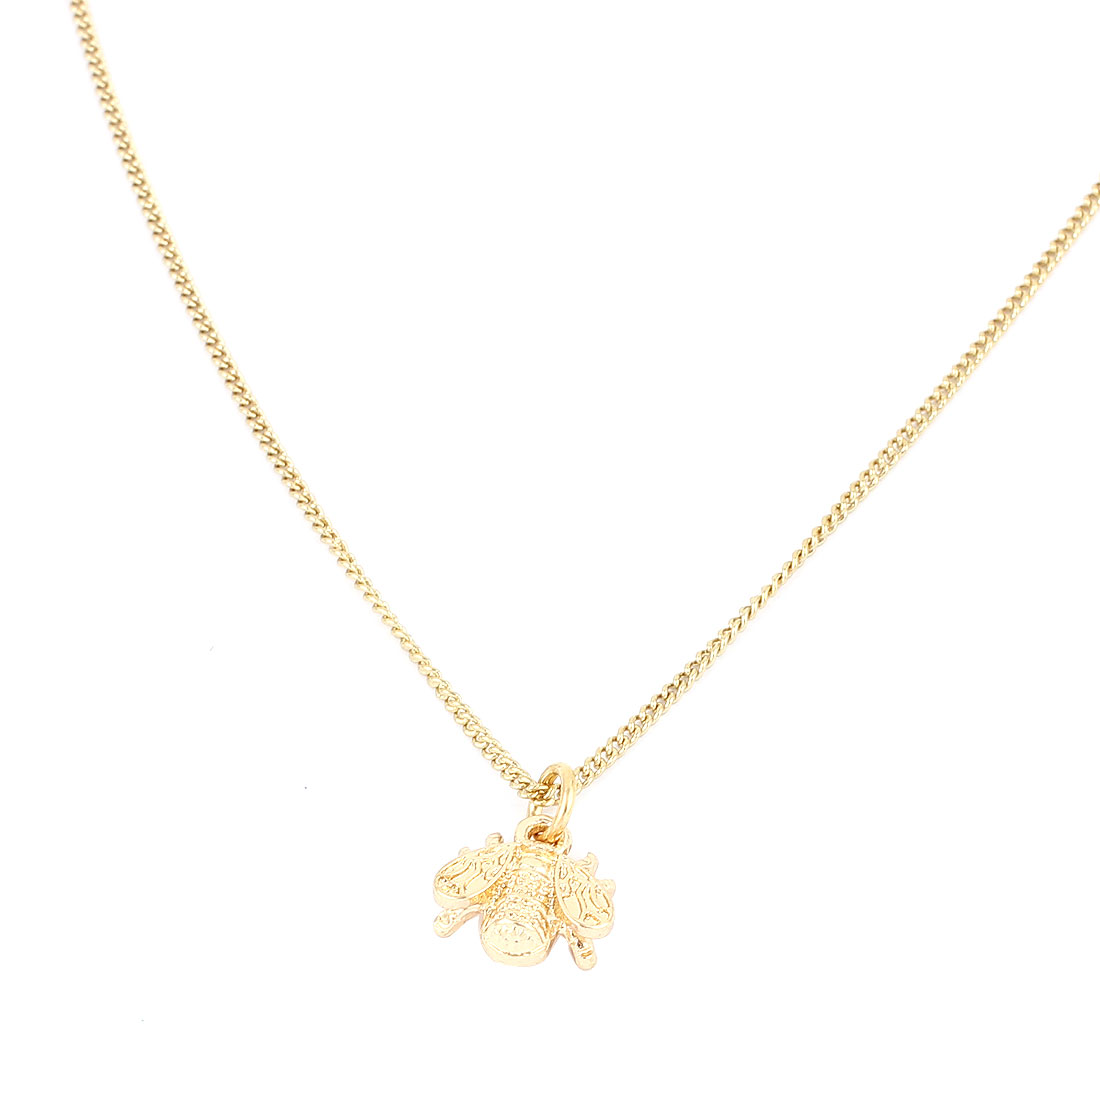 Gold Tone Metal Insect Pendant Lobster Buckle Strip Link Slim Chain Necklace Neckwear Collar for Ladies